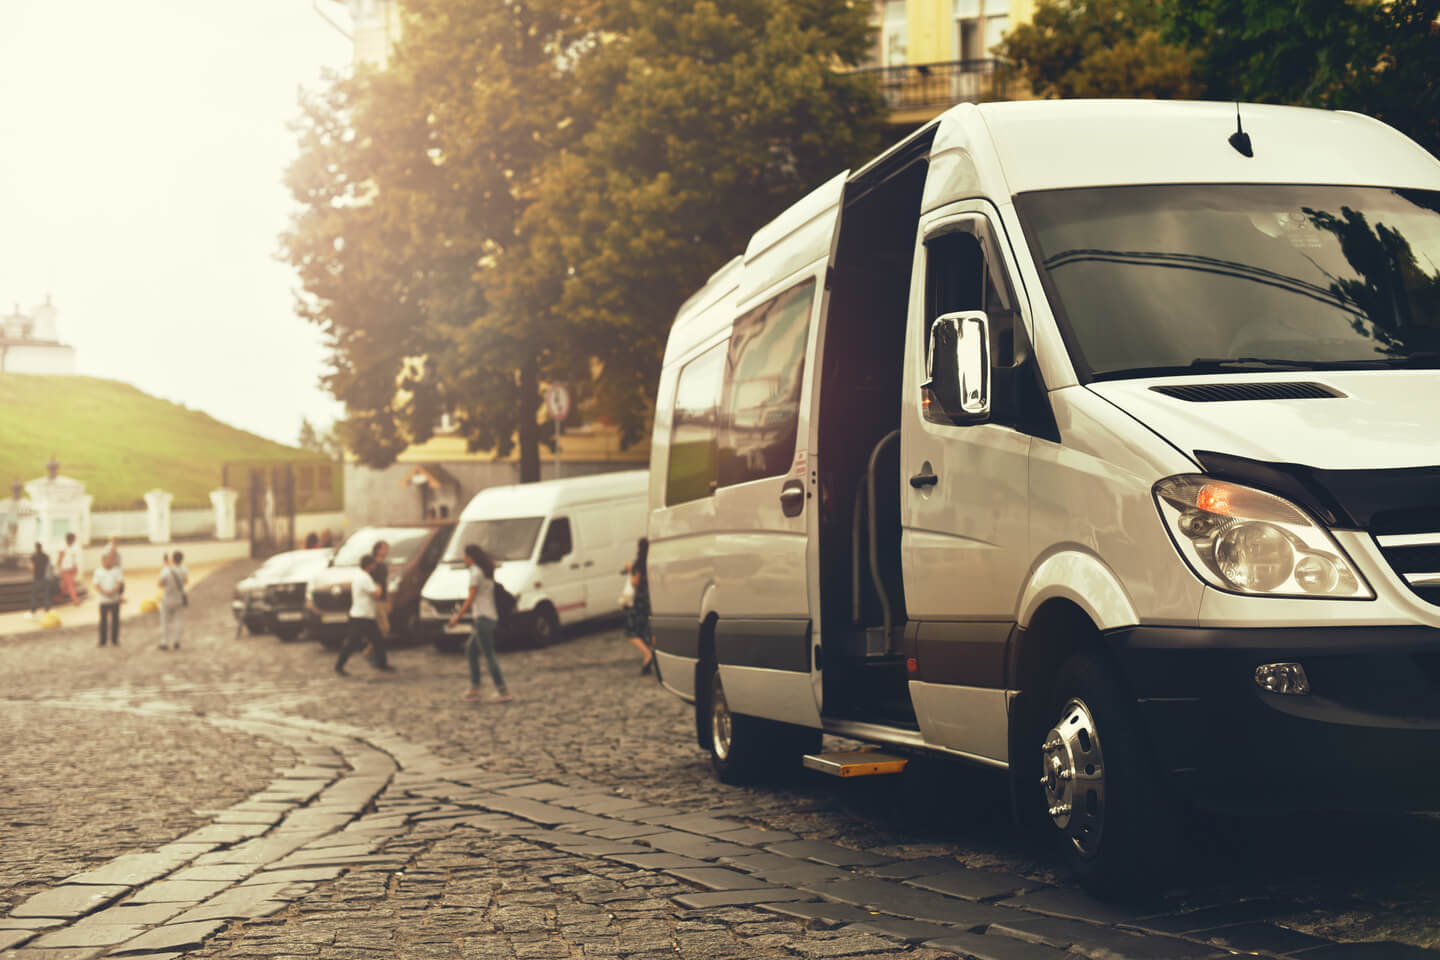 How-To Guide to Renting a Minibus